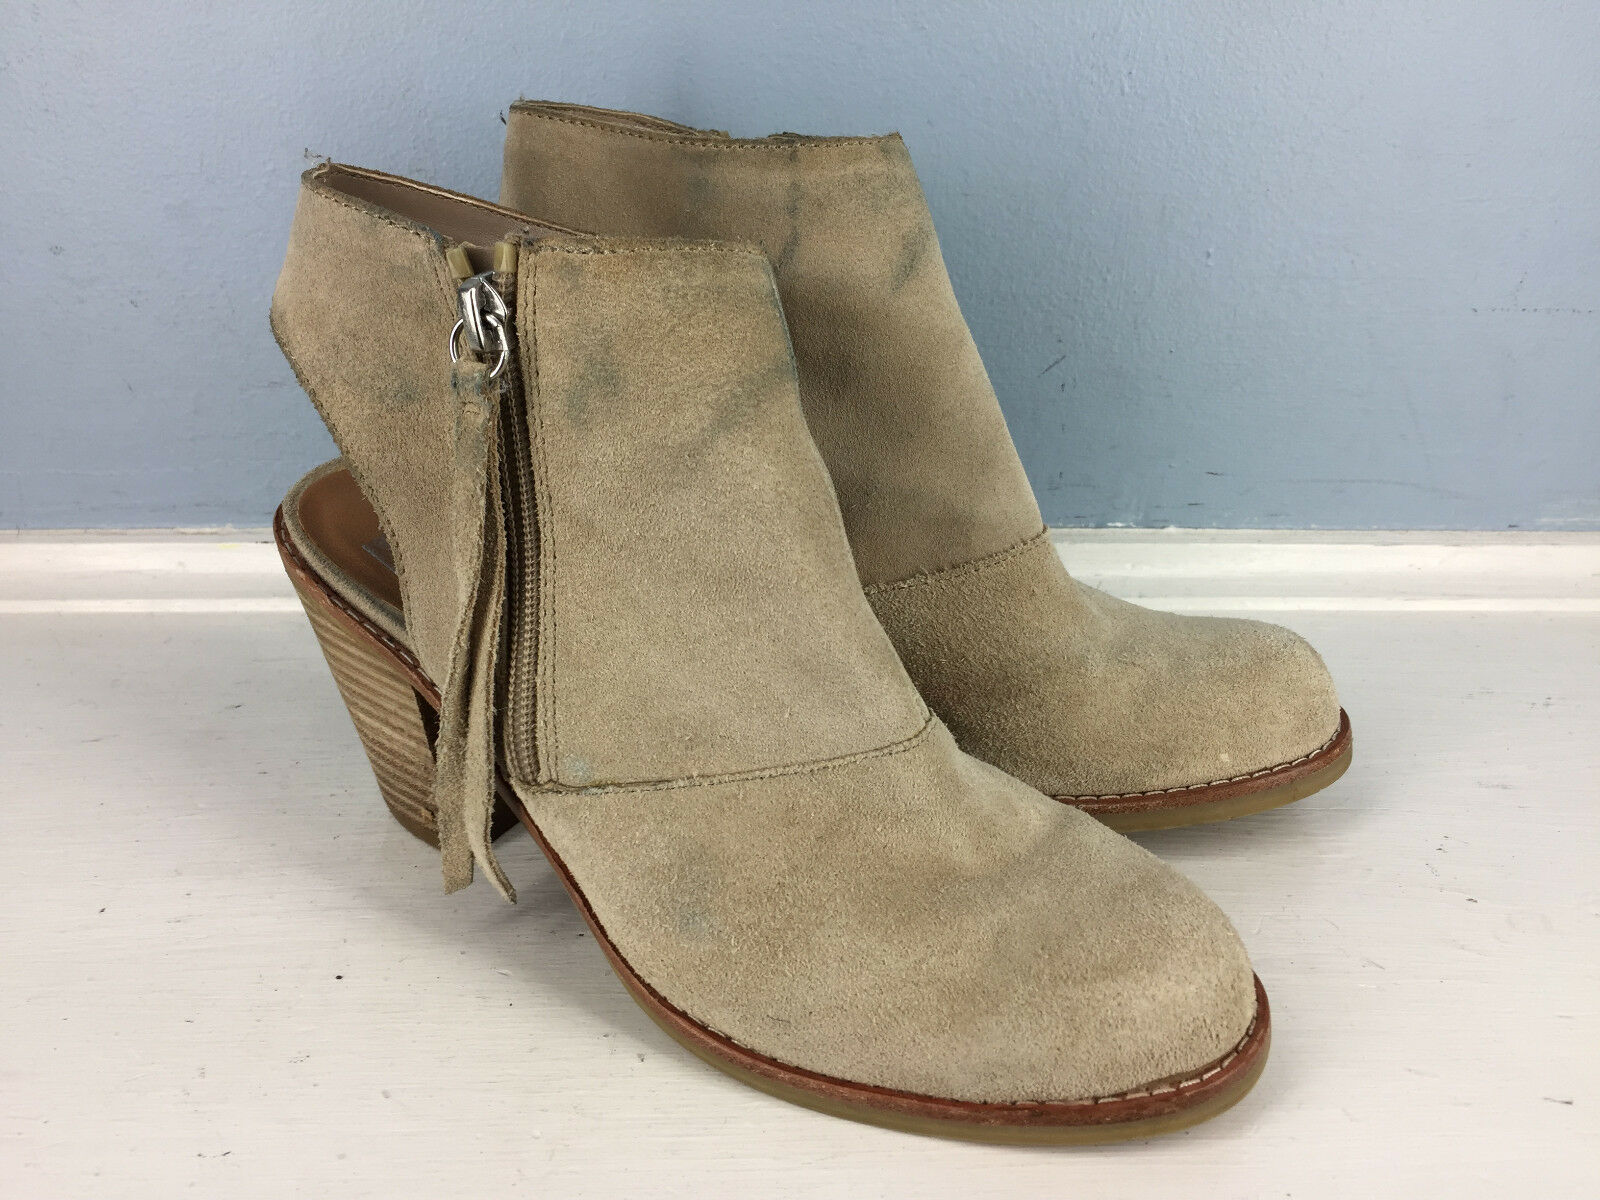 Dolce Vita DV Brown Suede Leather 6.5 booties Career Casual